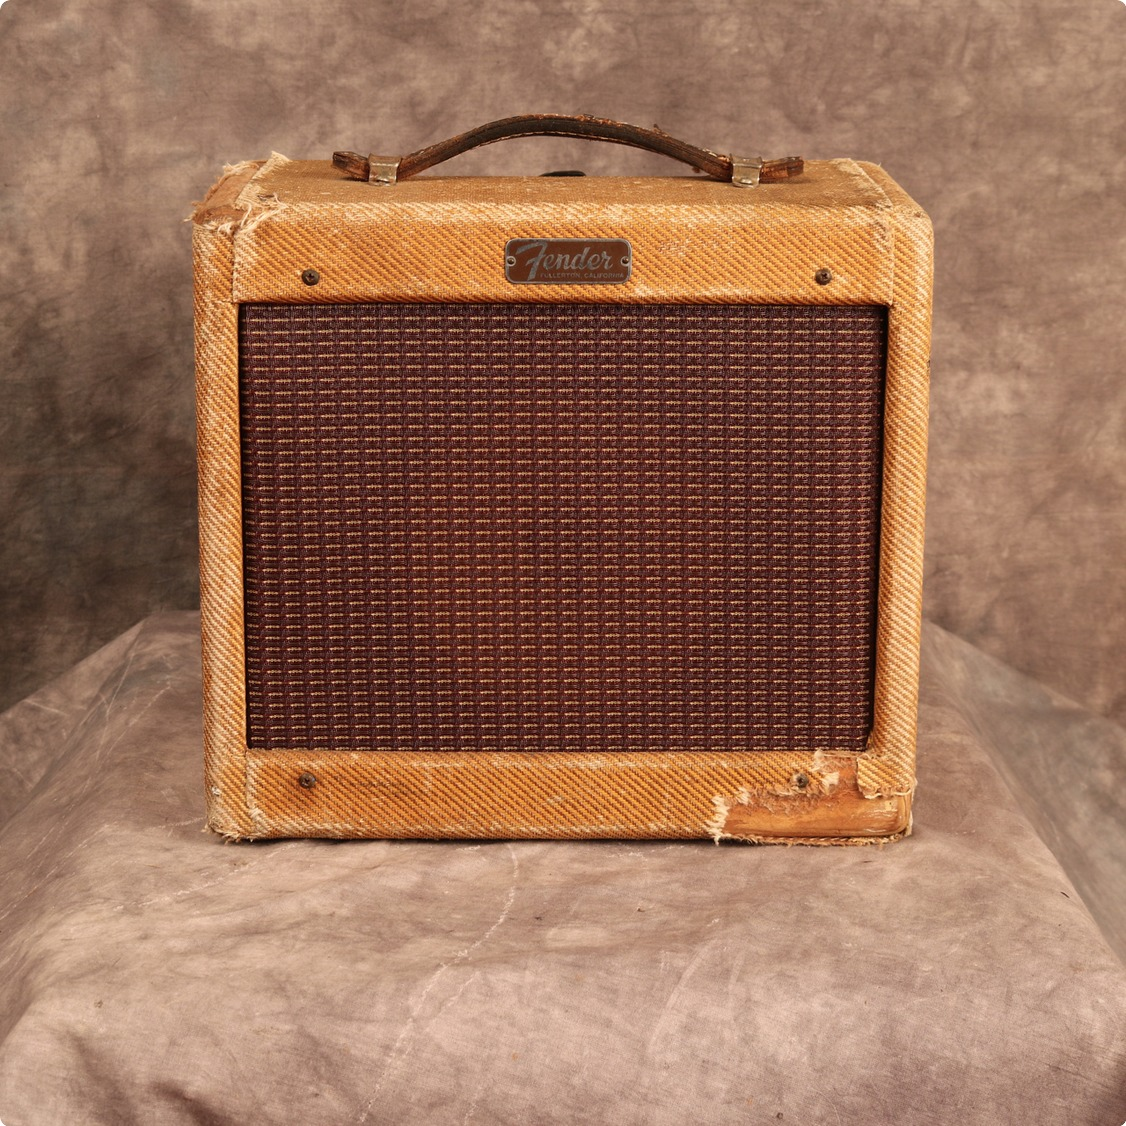 Fender Tweed Amp >> Fender Champ 5f1 1958 Tweed Amp For Sale Andy Baxter Bass Guitars Ltd